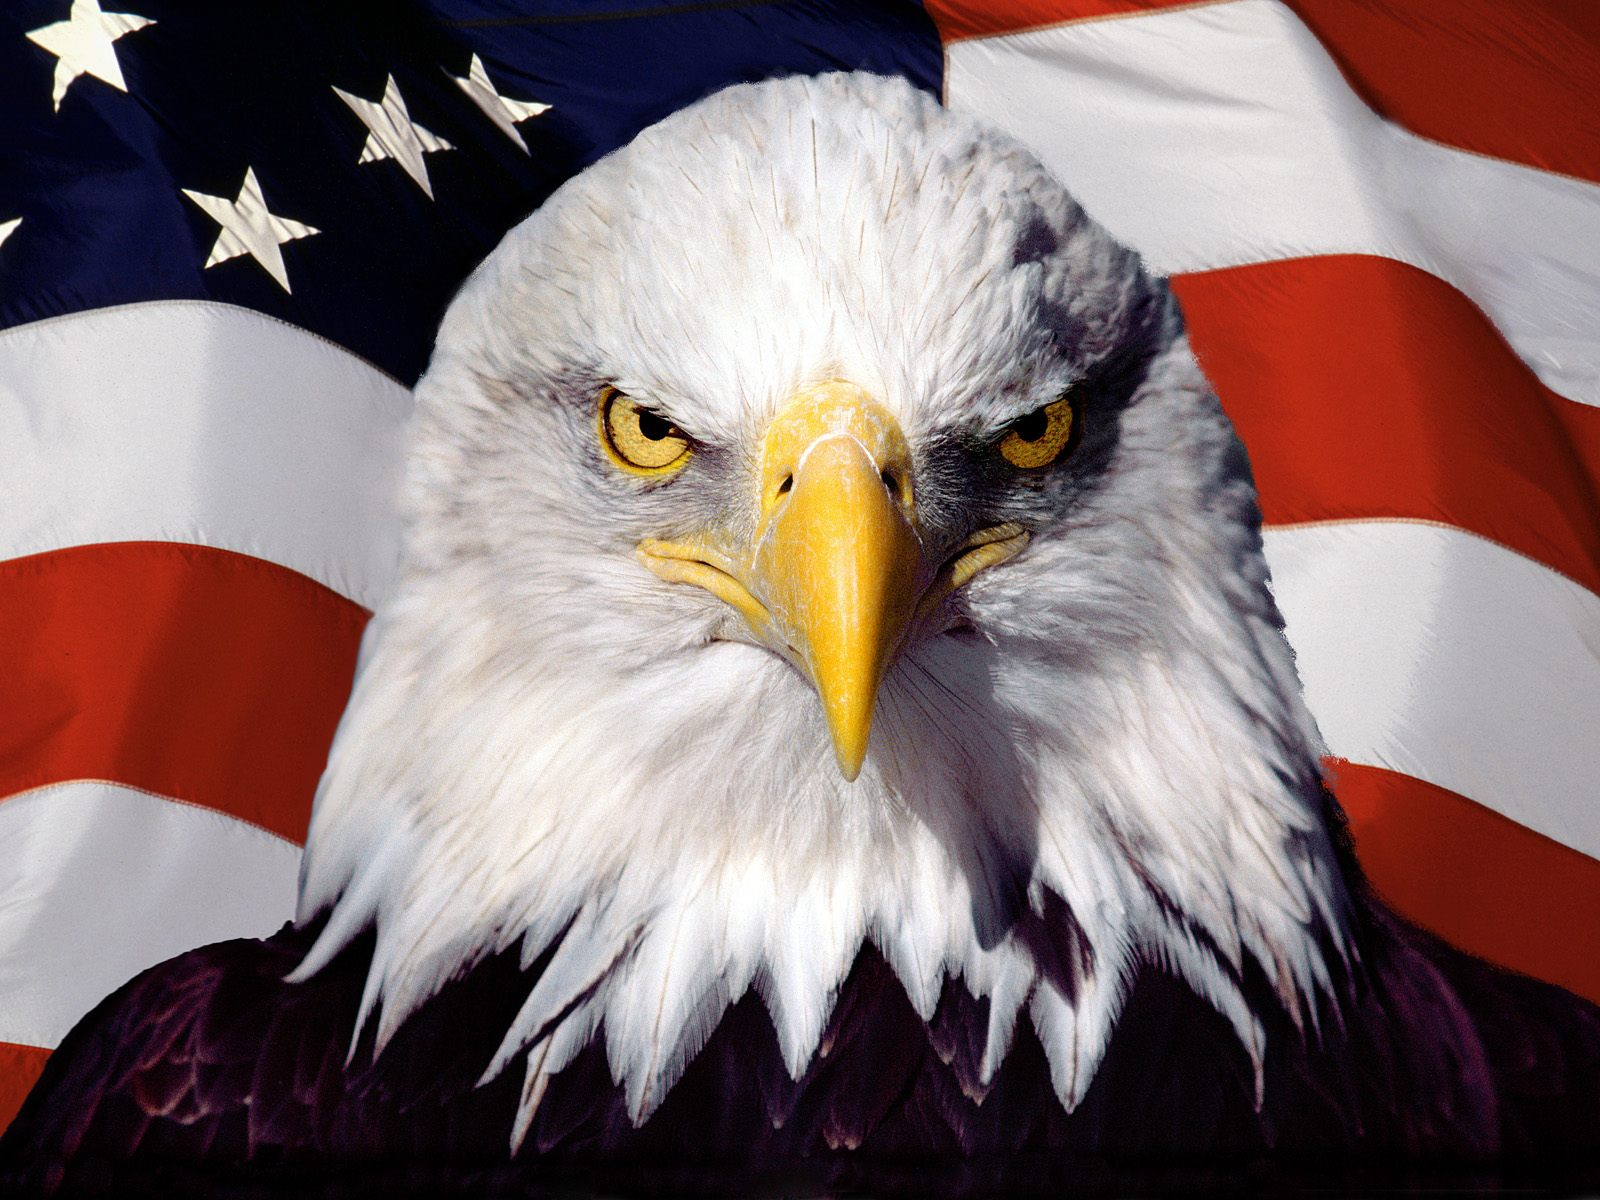 Symbol of America Eagle 726.51 Kb